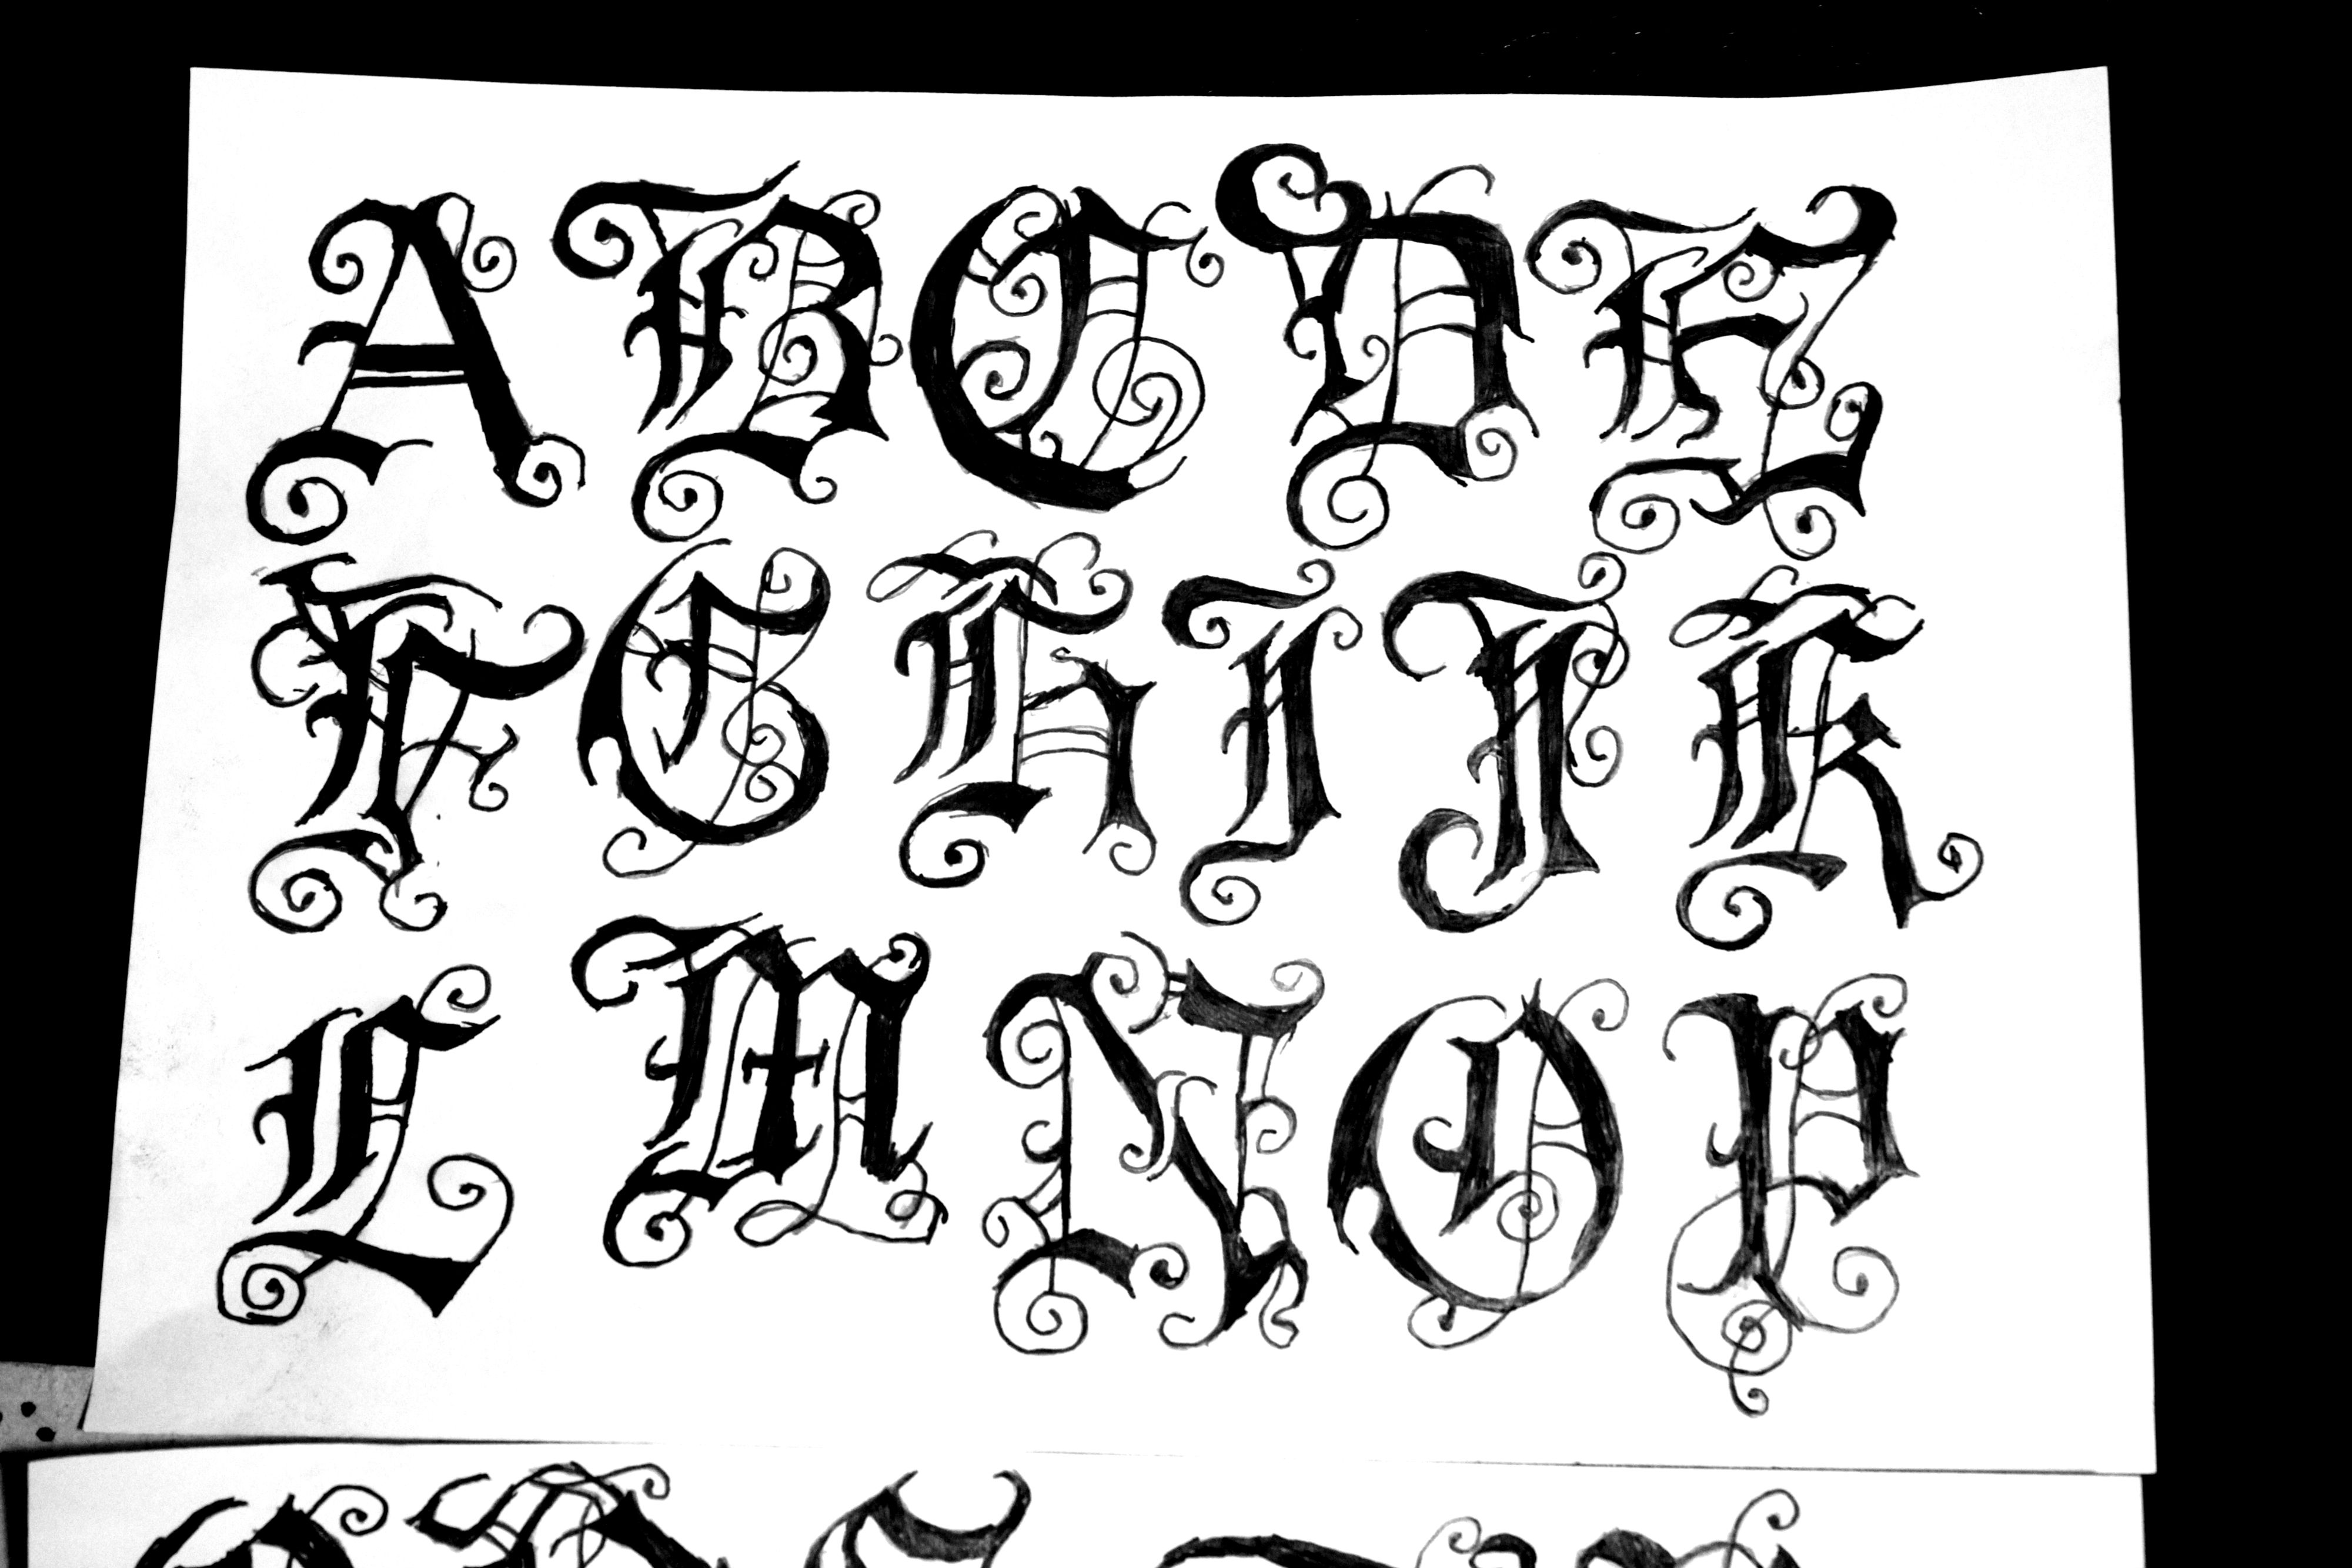 Calligraphy Alphabet Gothic Font Images Old